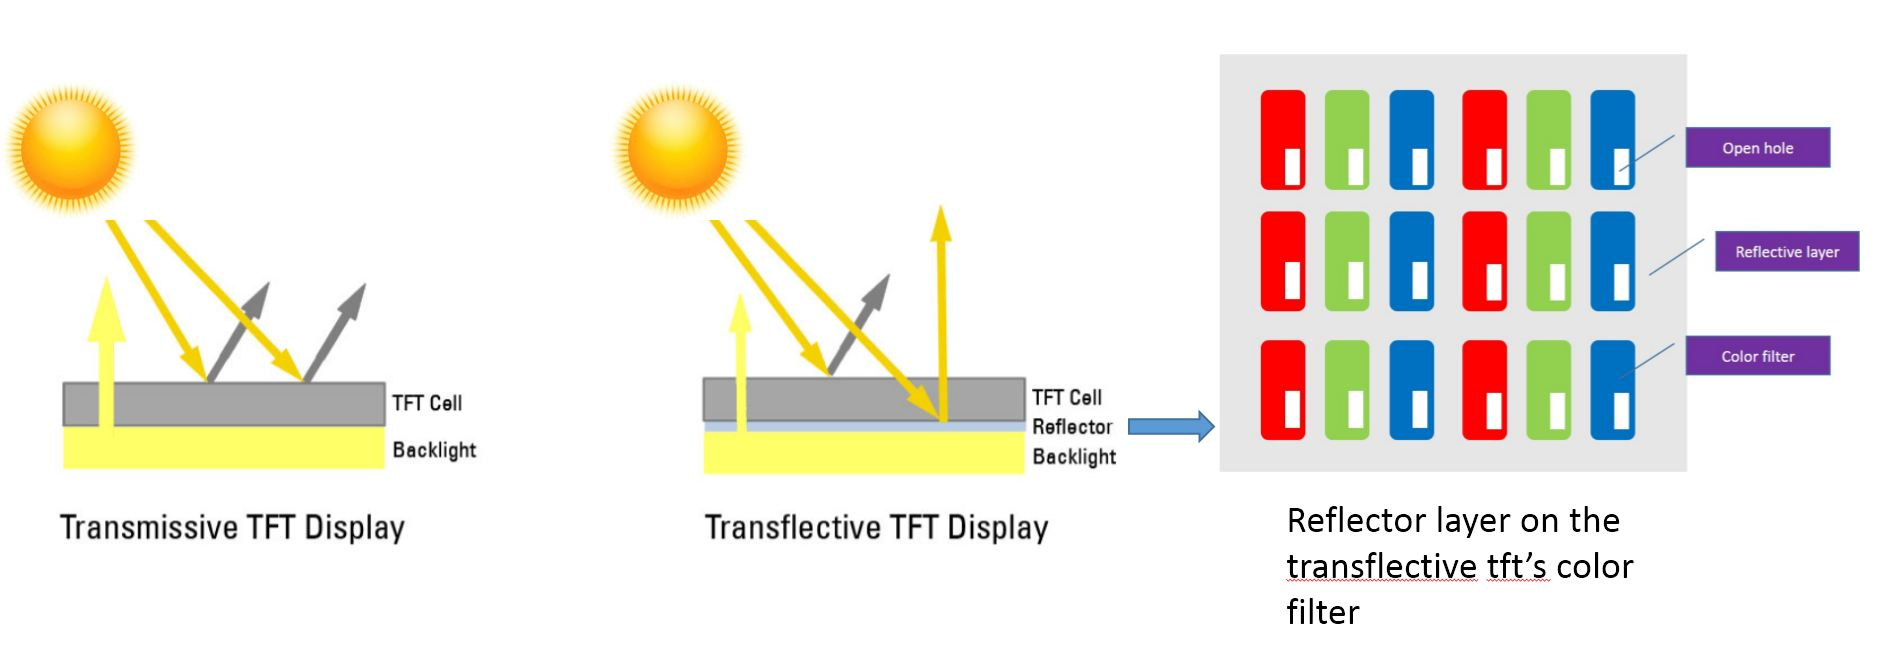 Transflective tft lcd display structure